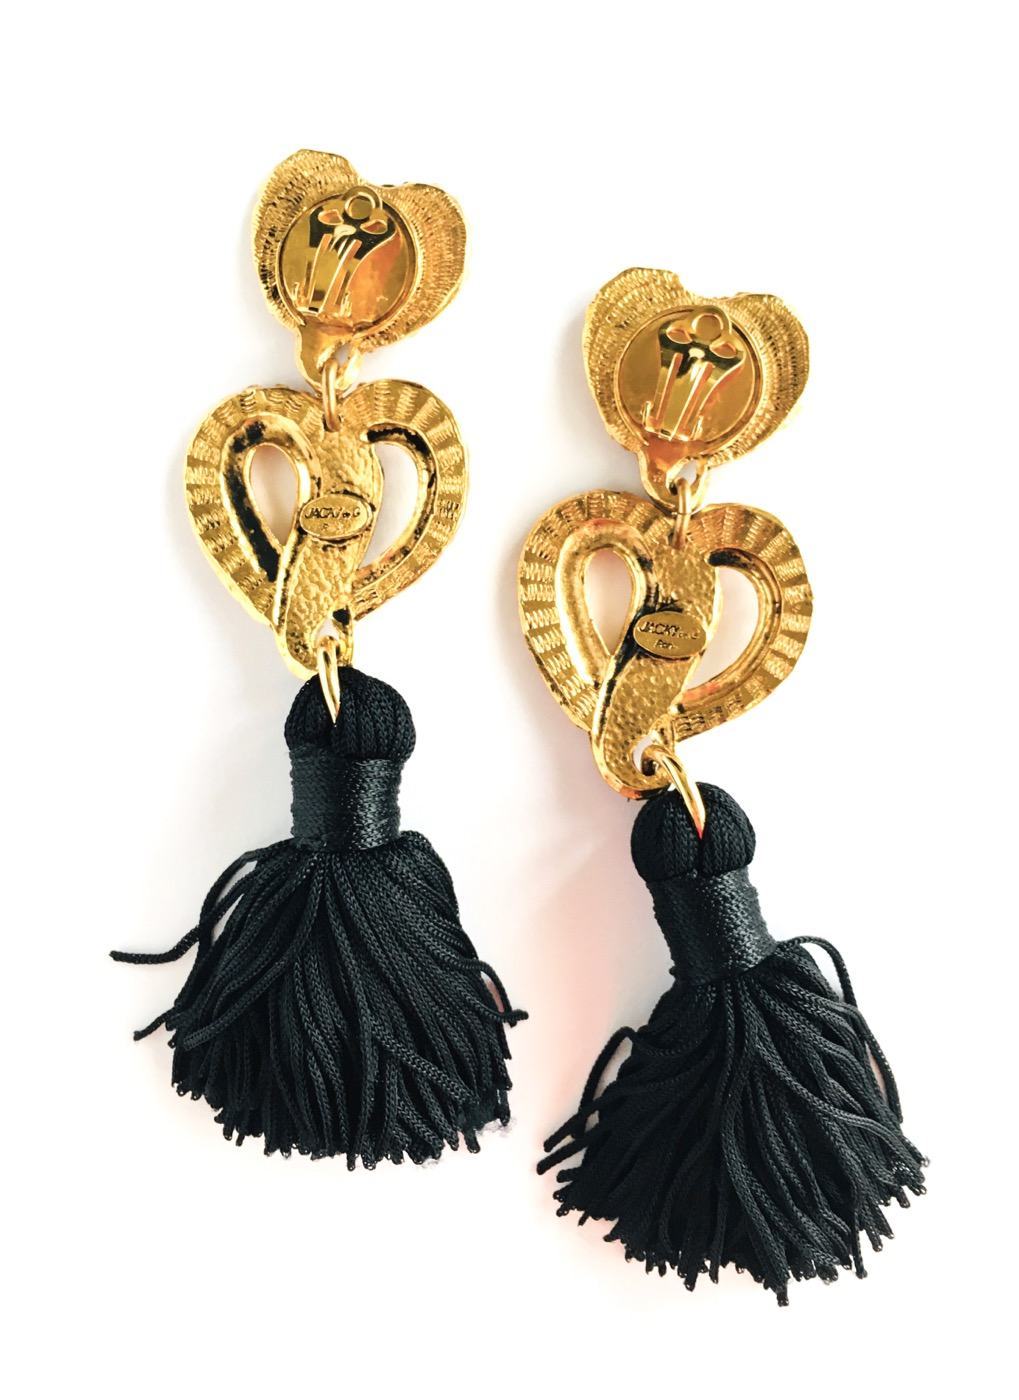 80s Jacky de G Paris gold + black tassel heart earrings